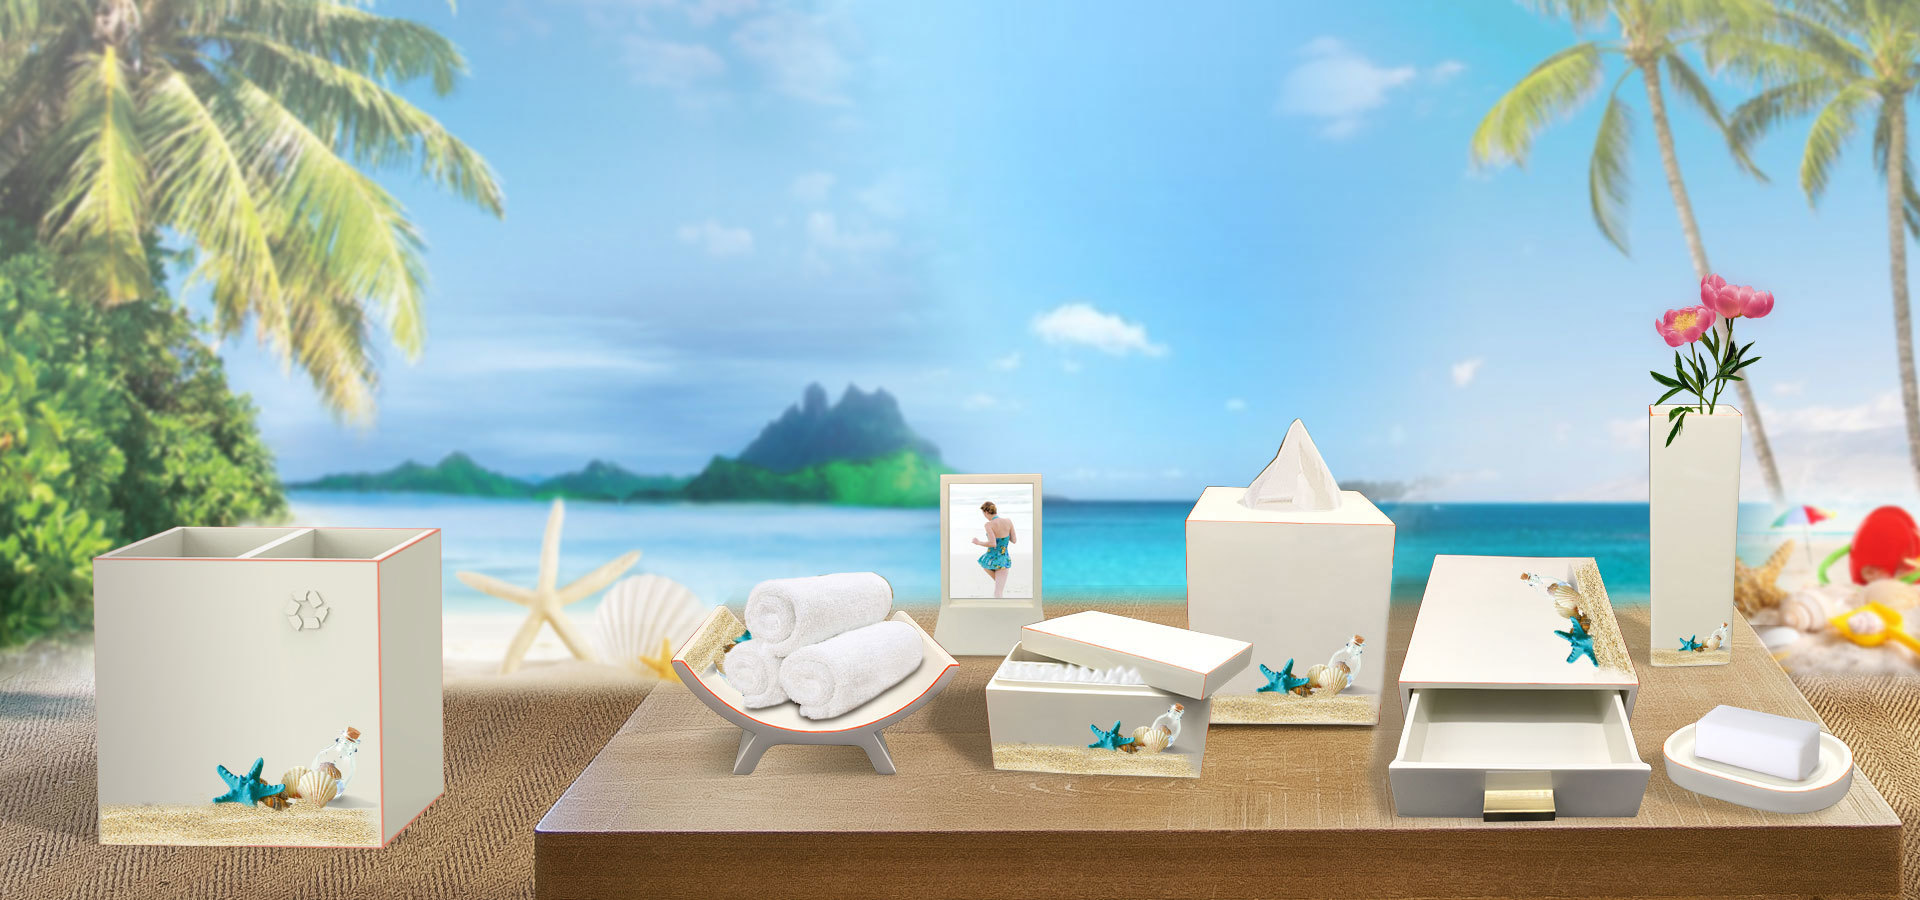 Hotel or Resort Collection Bathroom Accessories Set